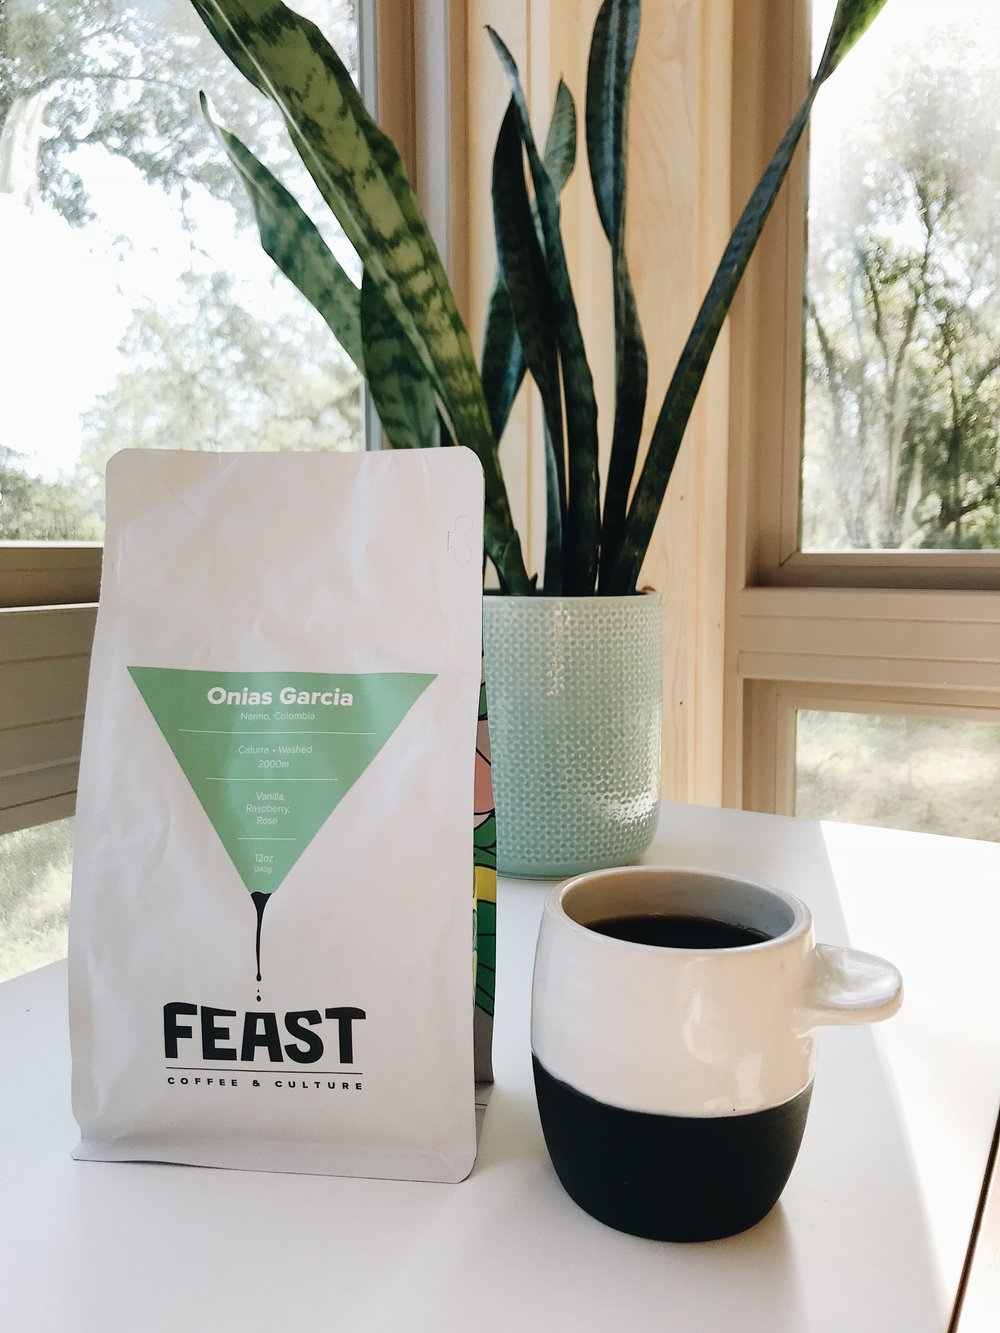 Artisan's FeastSubscriptionStarts at $55 / monthly - This showcases our collaborative endeavors with local artists and artisans to create beautiful, unique Feast merchandise.Details: MONTHLY: 12oz bag of freshly roasted, curated coffee varietal of the month & Feast recipe card. QUARTERLY: Feast merchandise item, seasonal zine.